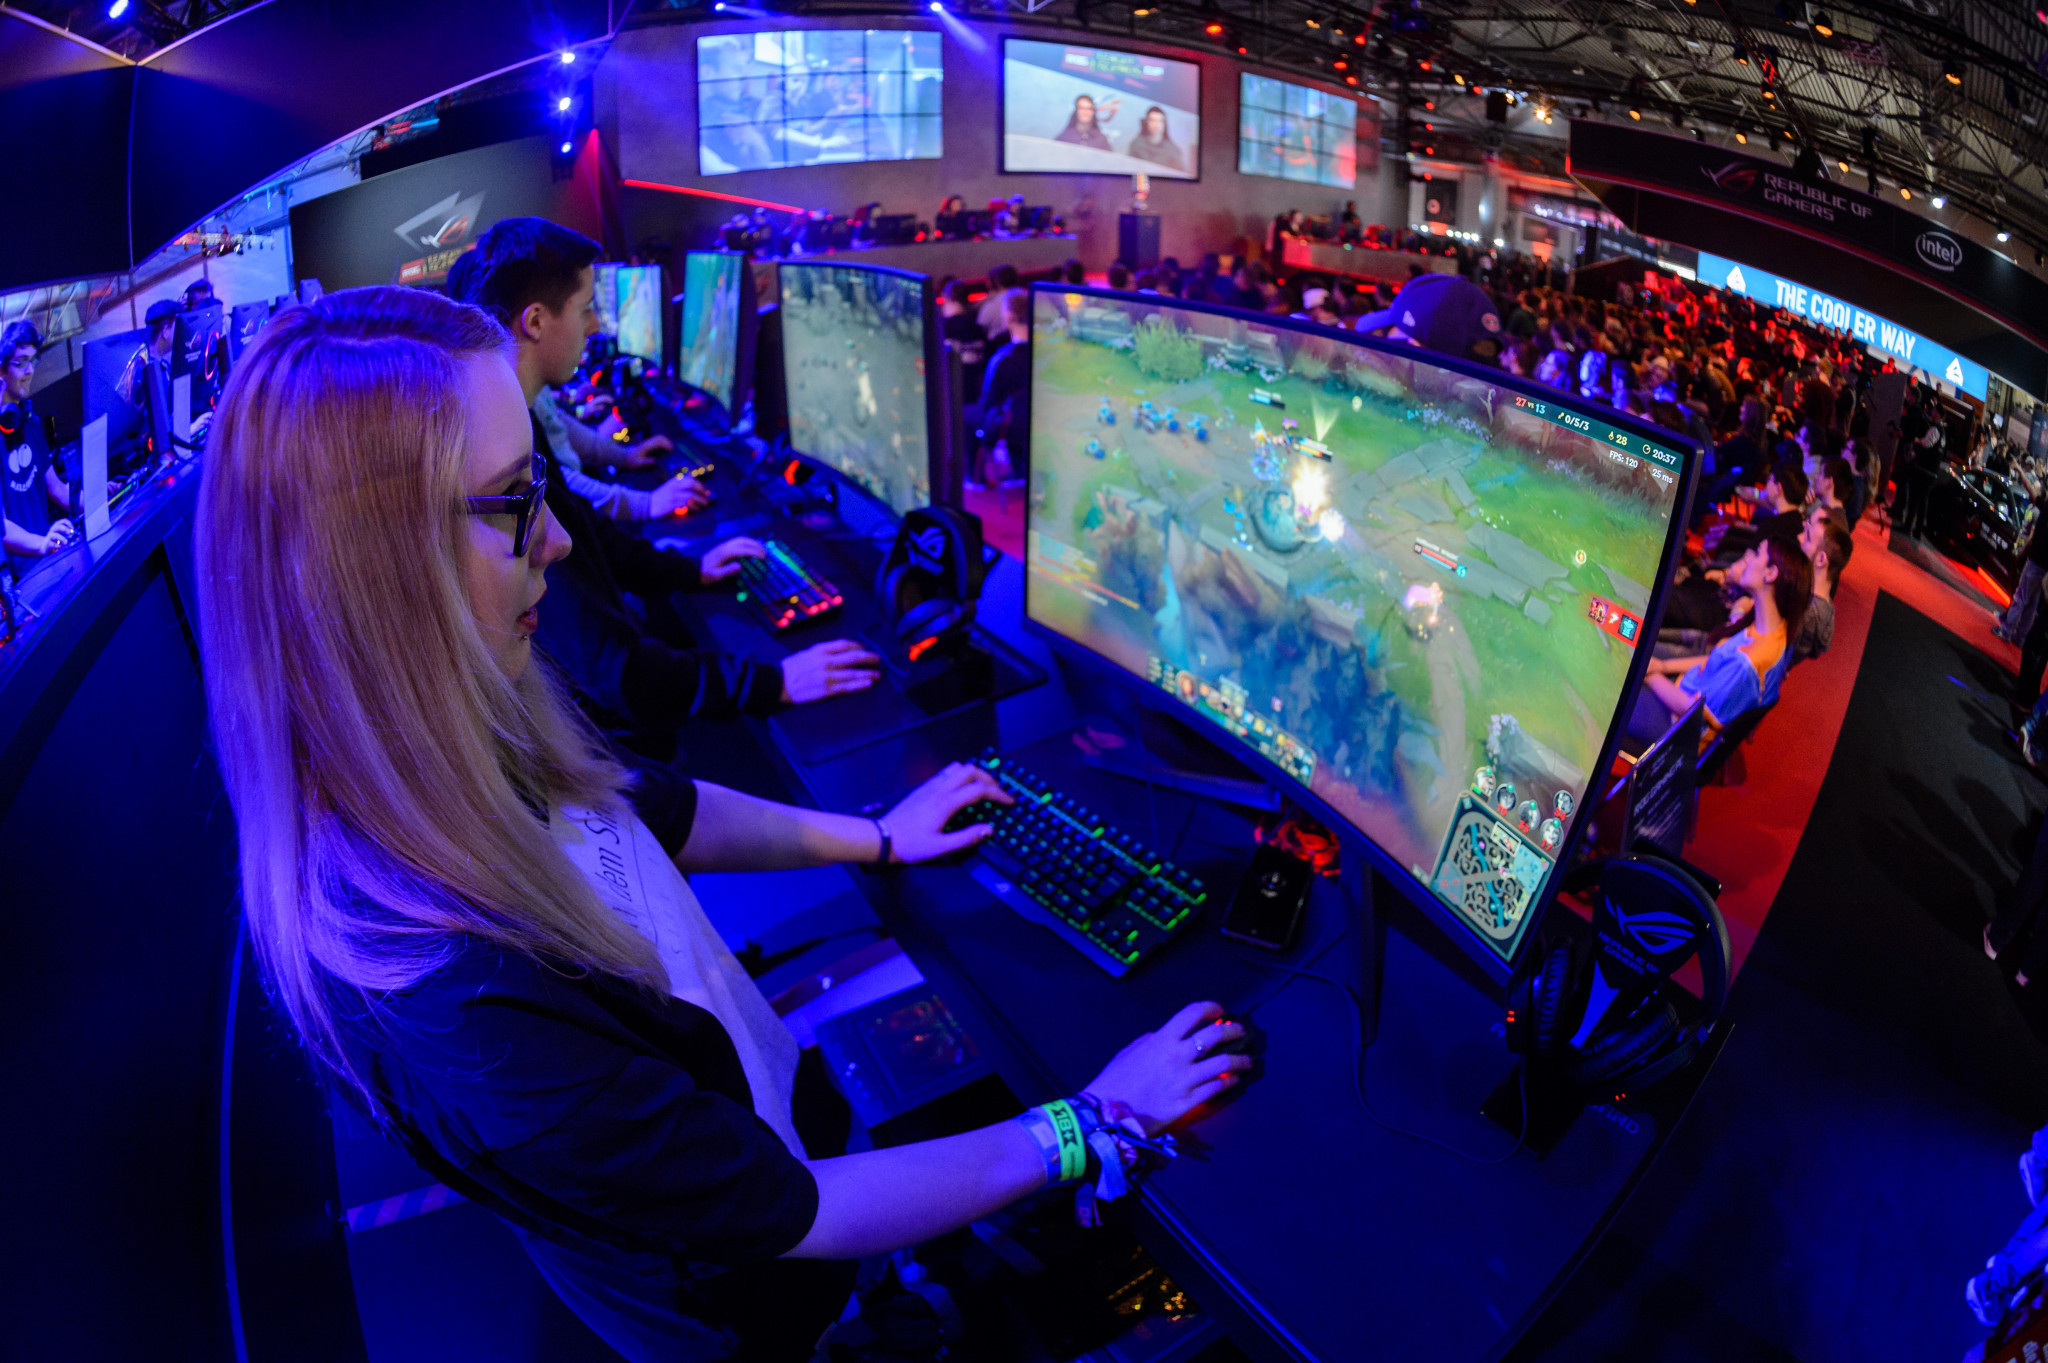 Esports are not the main priority for Alibaba, it has been claimed